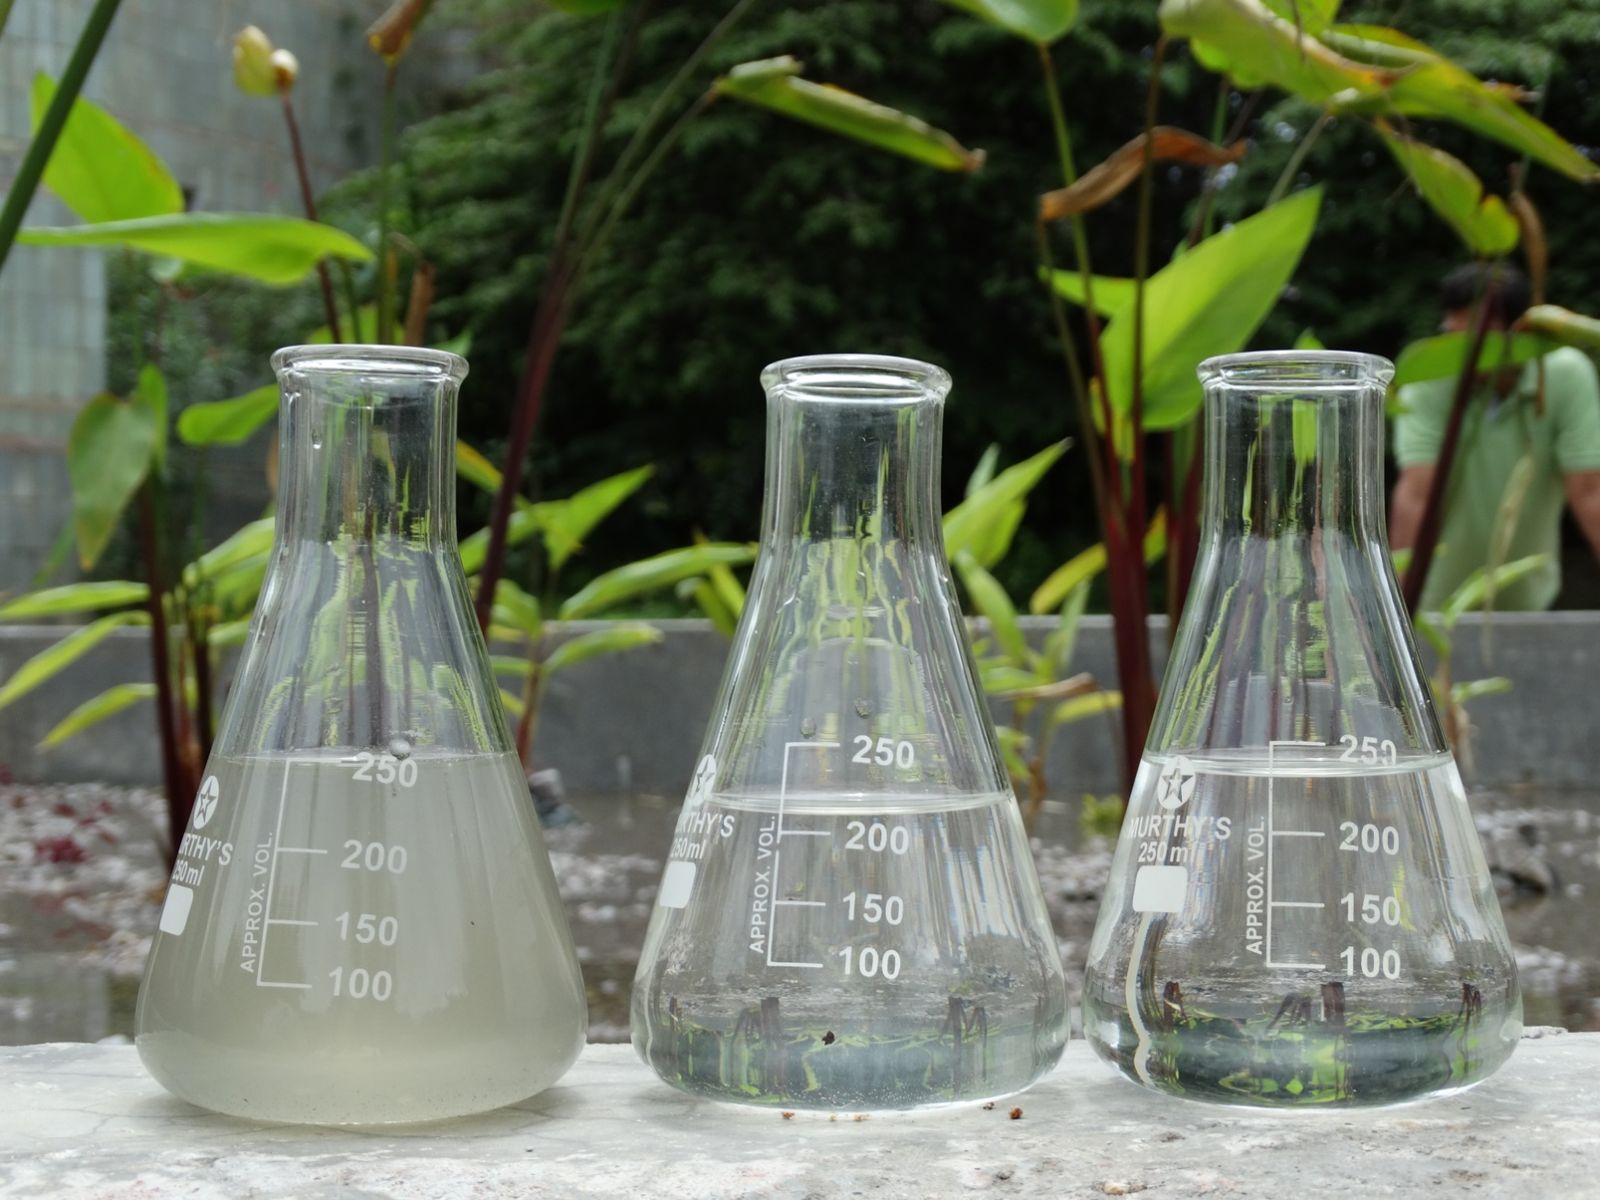 Before (left) and after water samples from an Ayala phytoremediation site in Hyderabad, India. Photo: courtesy